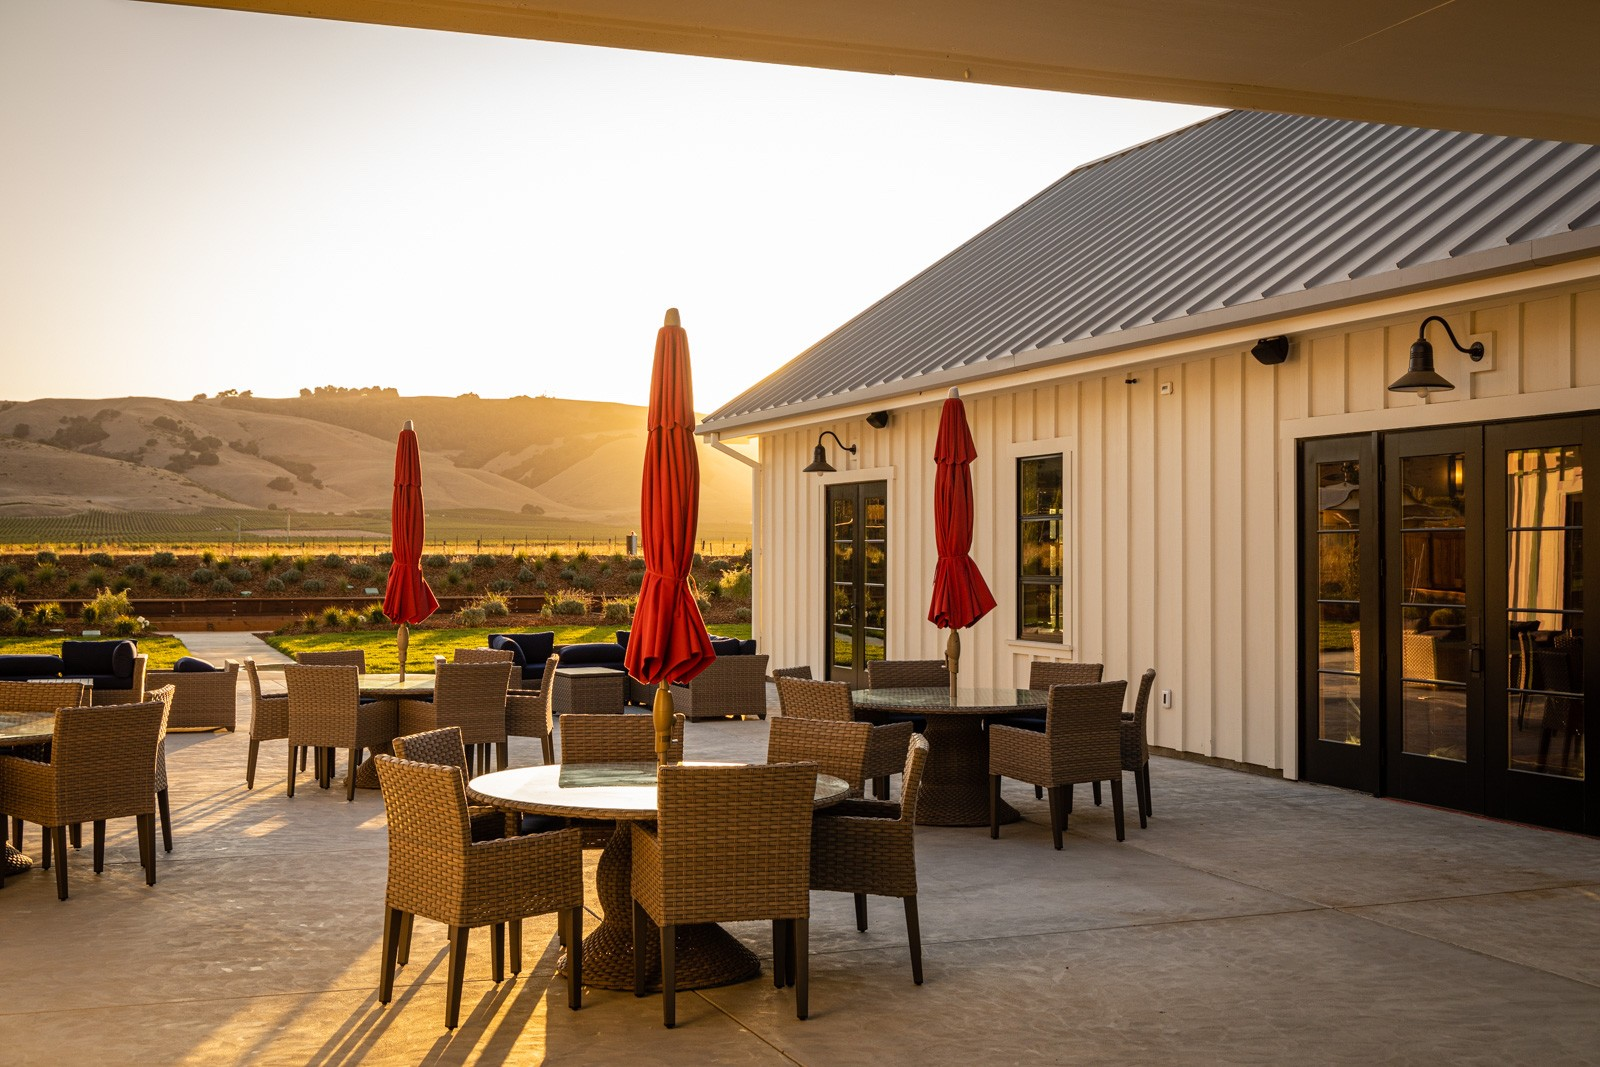 Anaba Winery: Five New Foodie Hotspots